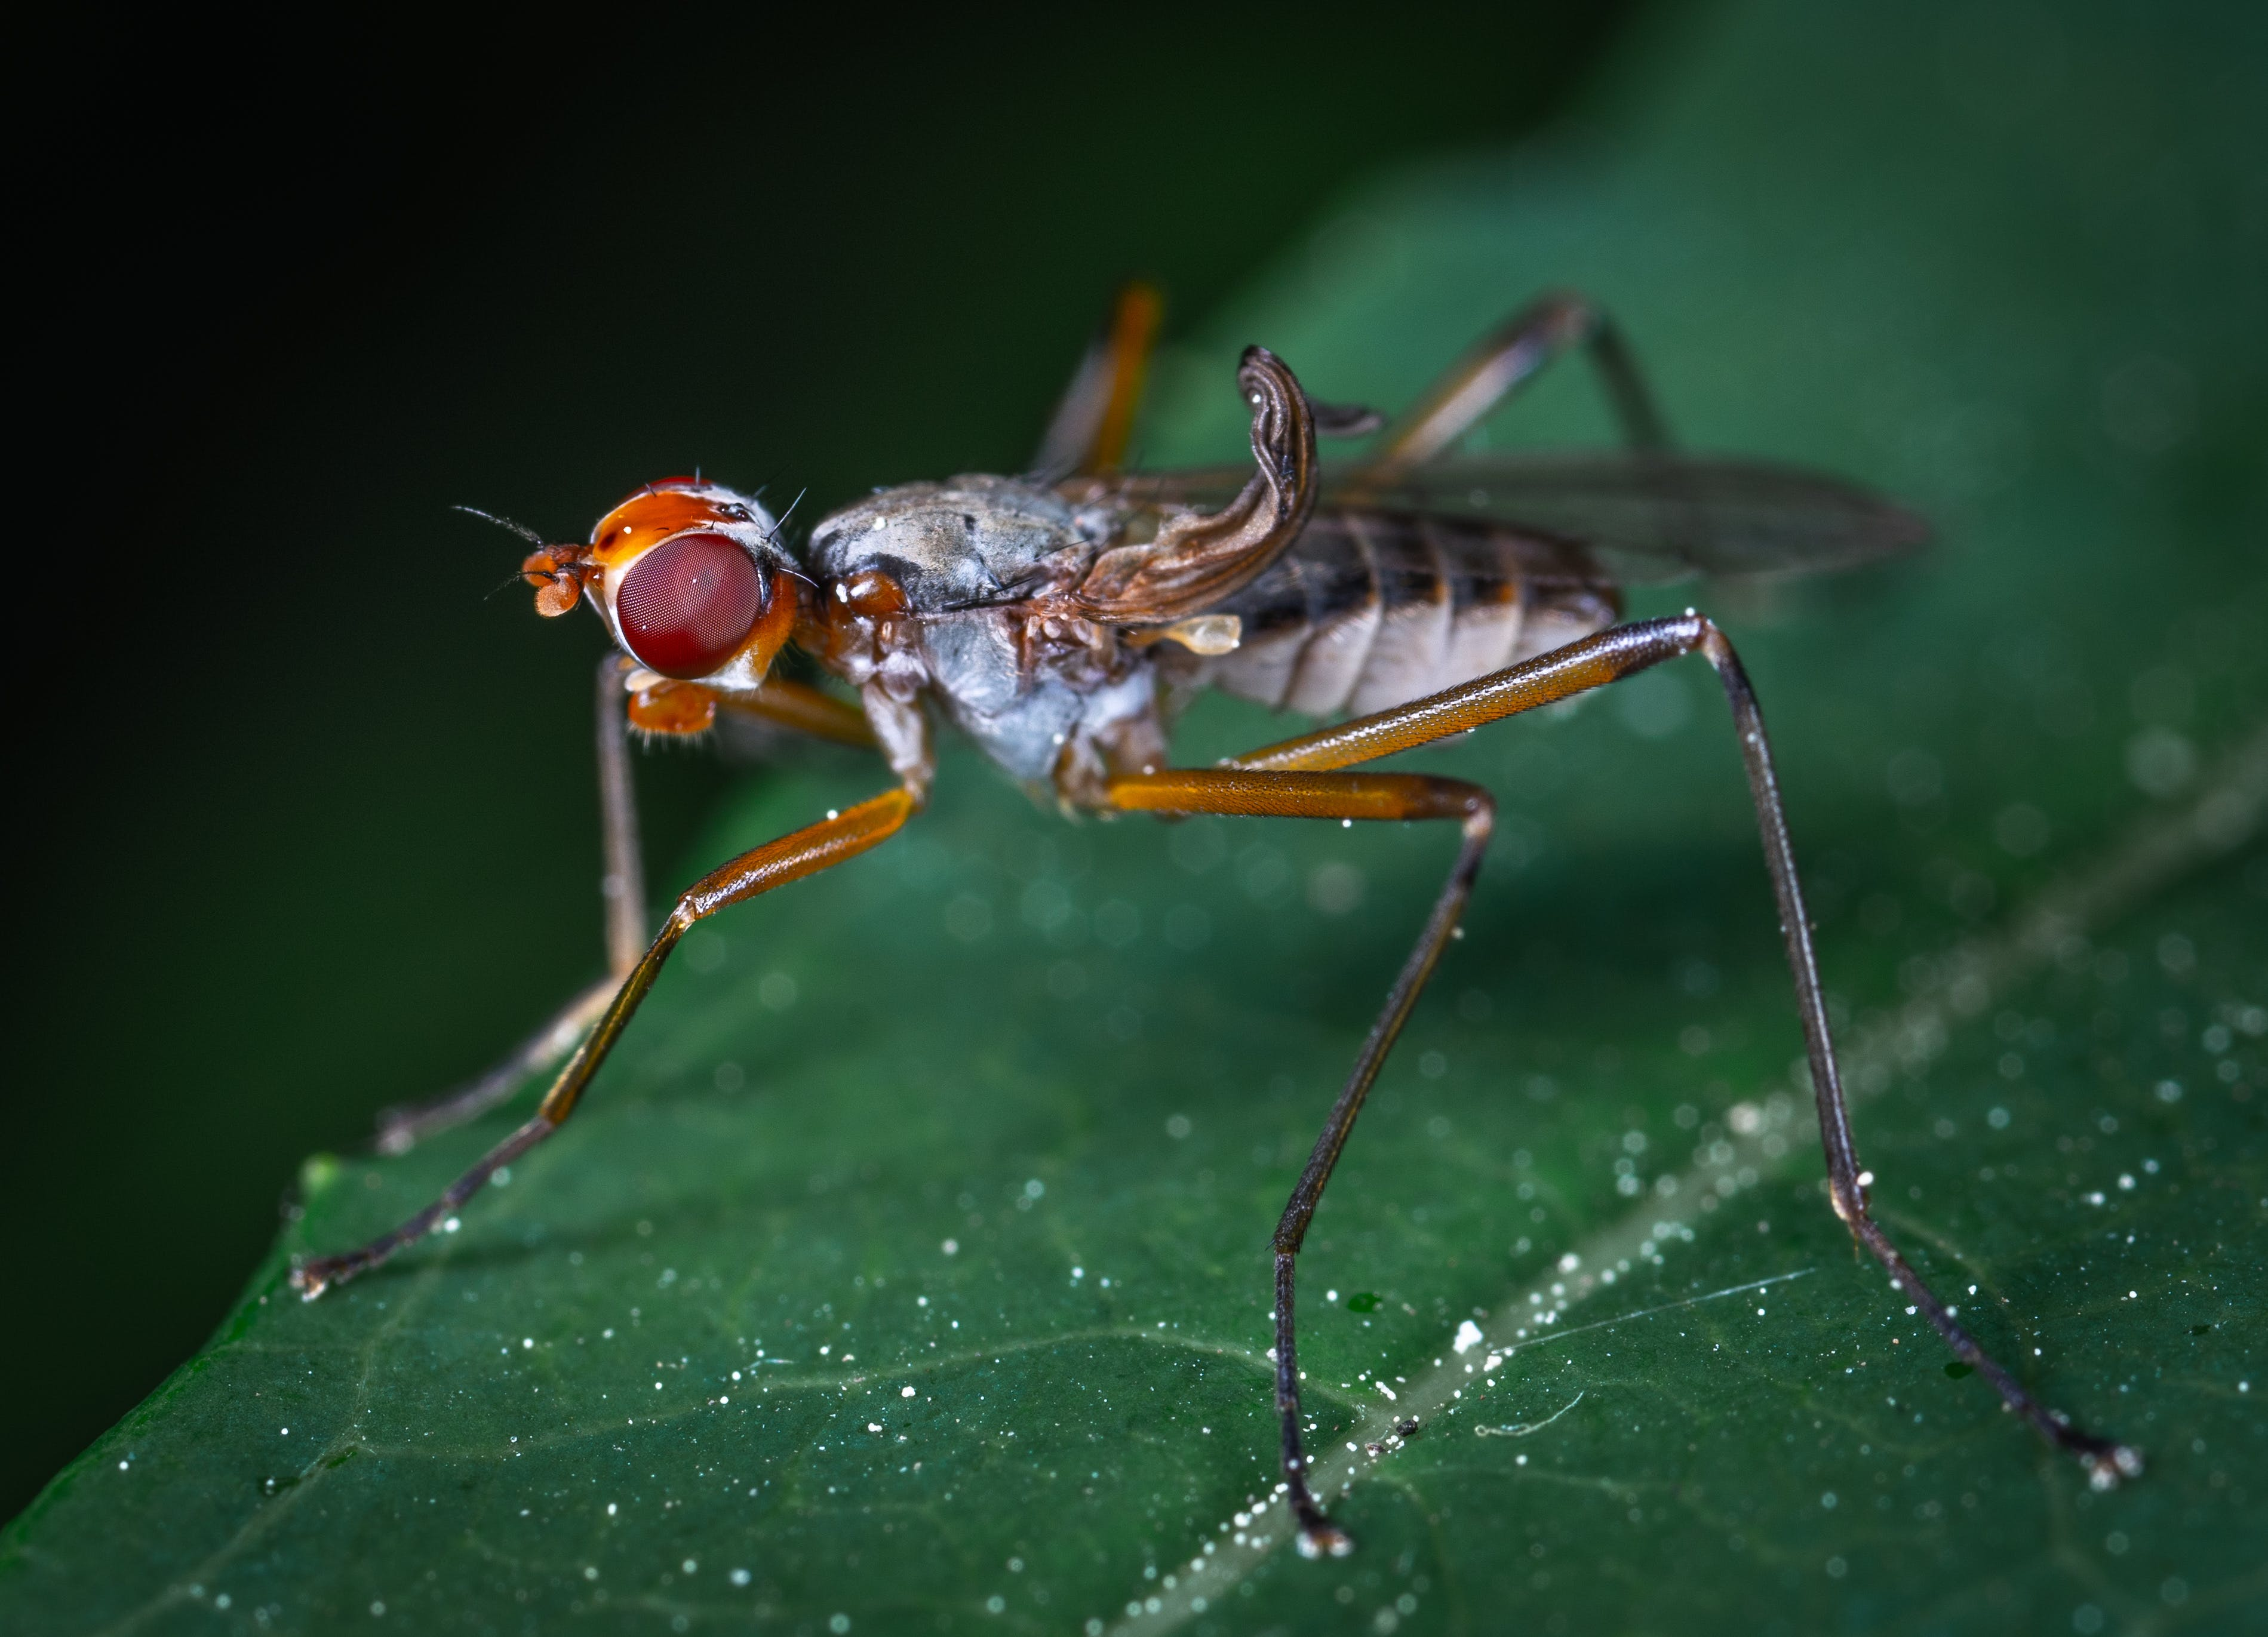 Macro Photography of Insect on Leaf